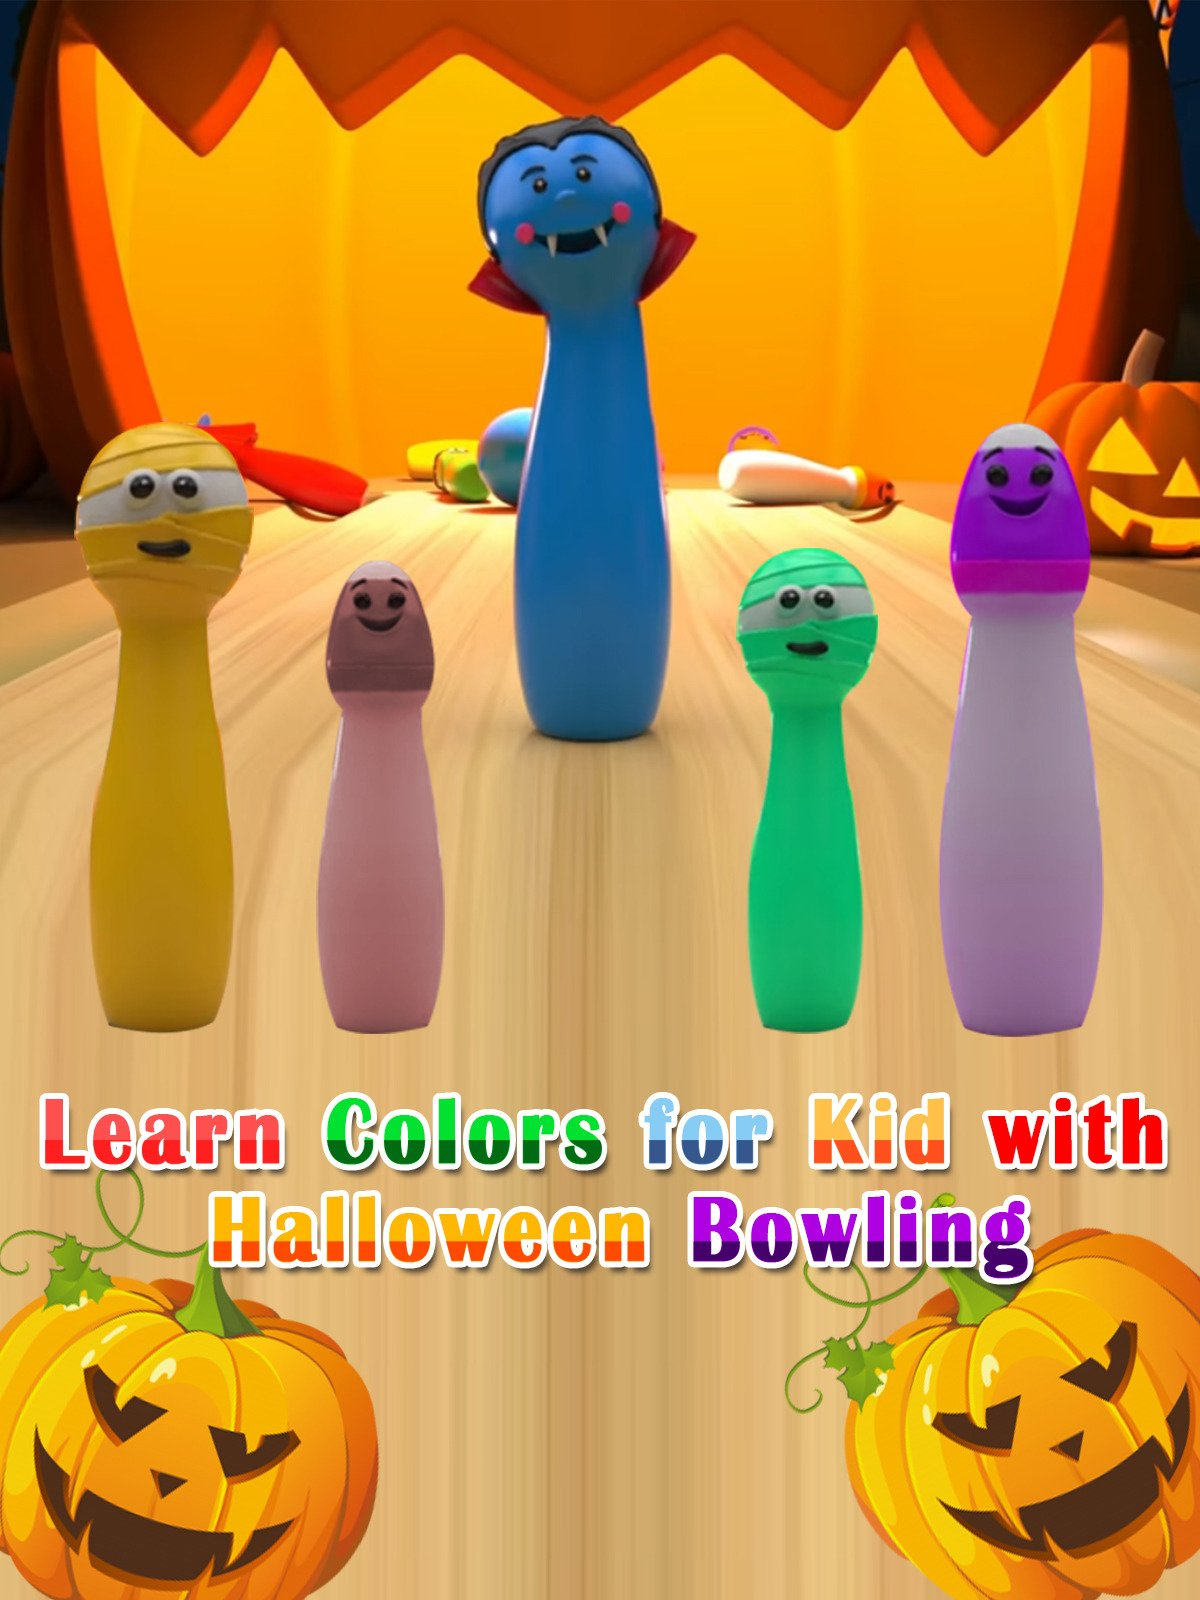 Learn Colors for Kid with Halloween Bowling